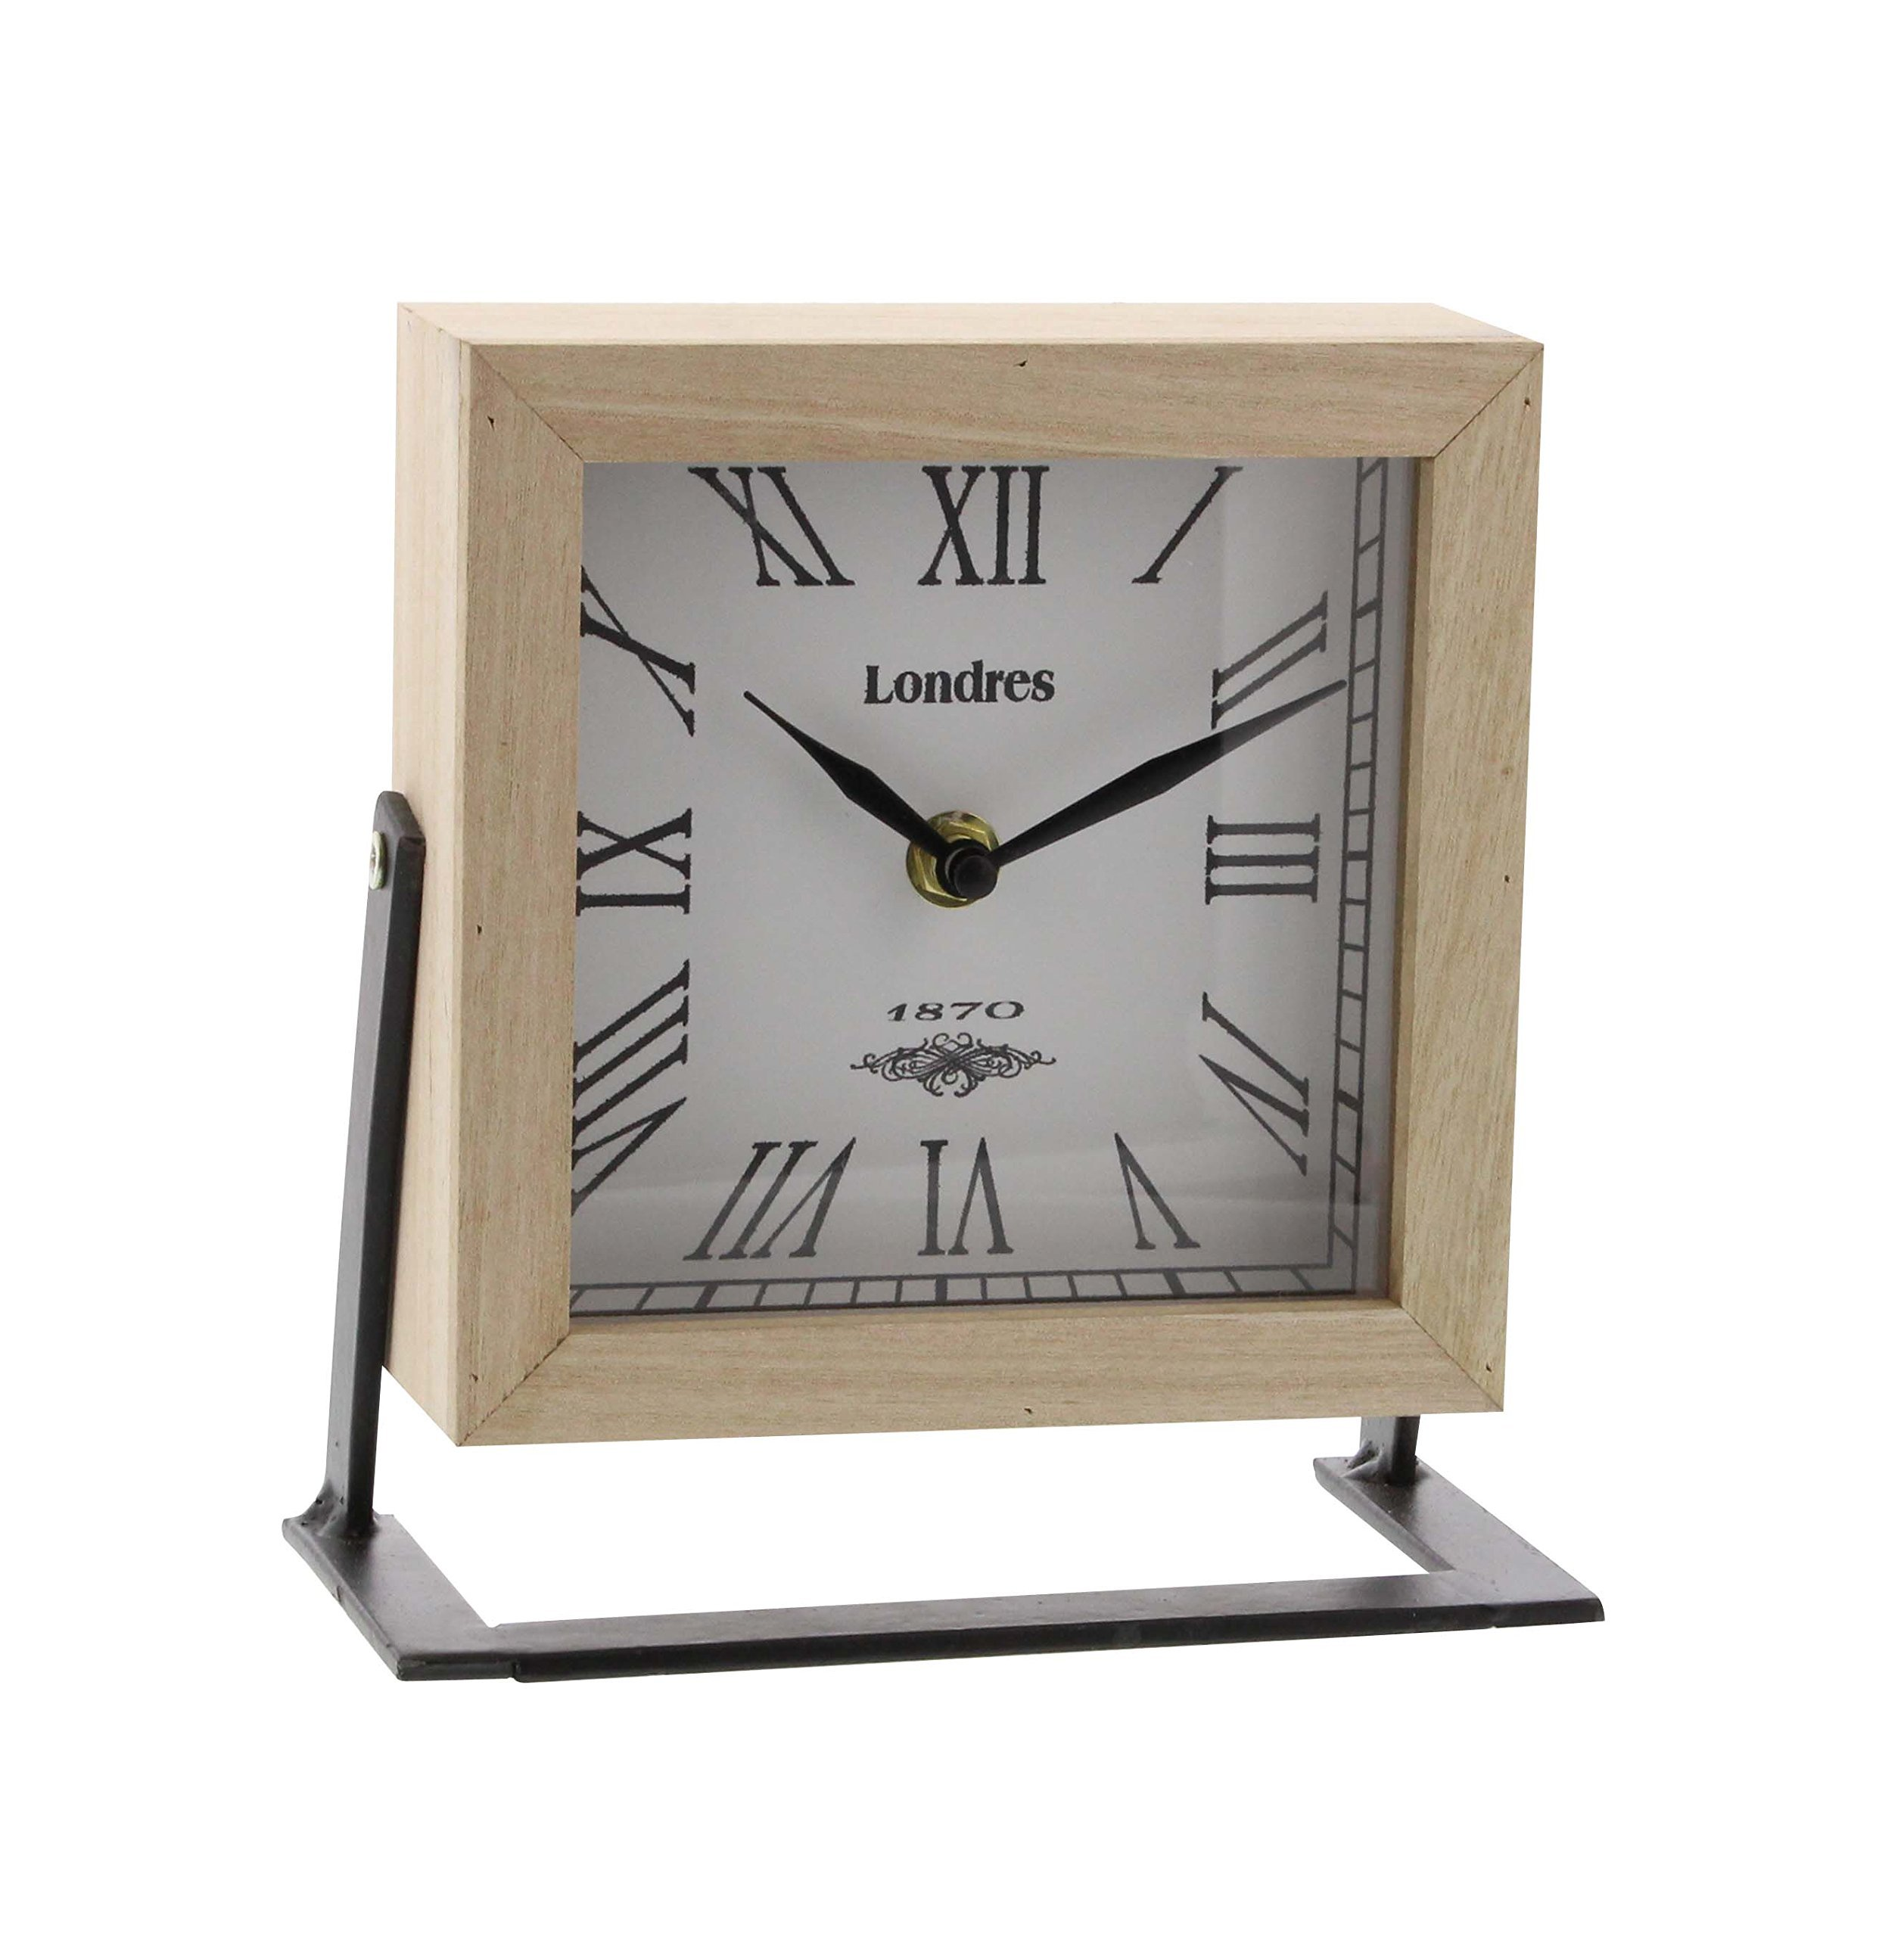 Deco 79 85254 Iron and Wood Square Table Clock, White/Lightbrown/Black/Gray - Dimensions: 7X3X7 Dimensions 2: CLOCK FACE 4X4 Dimensions 3: BASE 7X3 - clocks, bedroom-decor, bedroom - 81F9kcMxMwL -